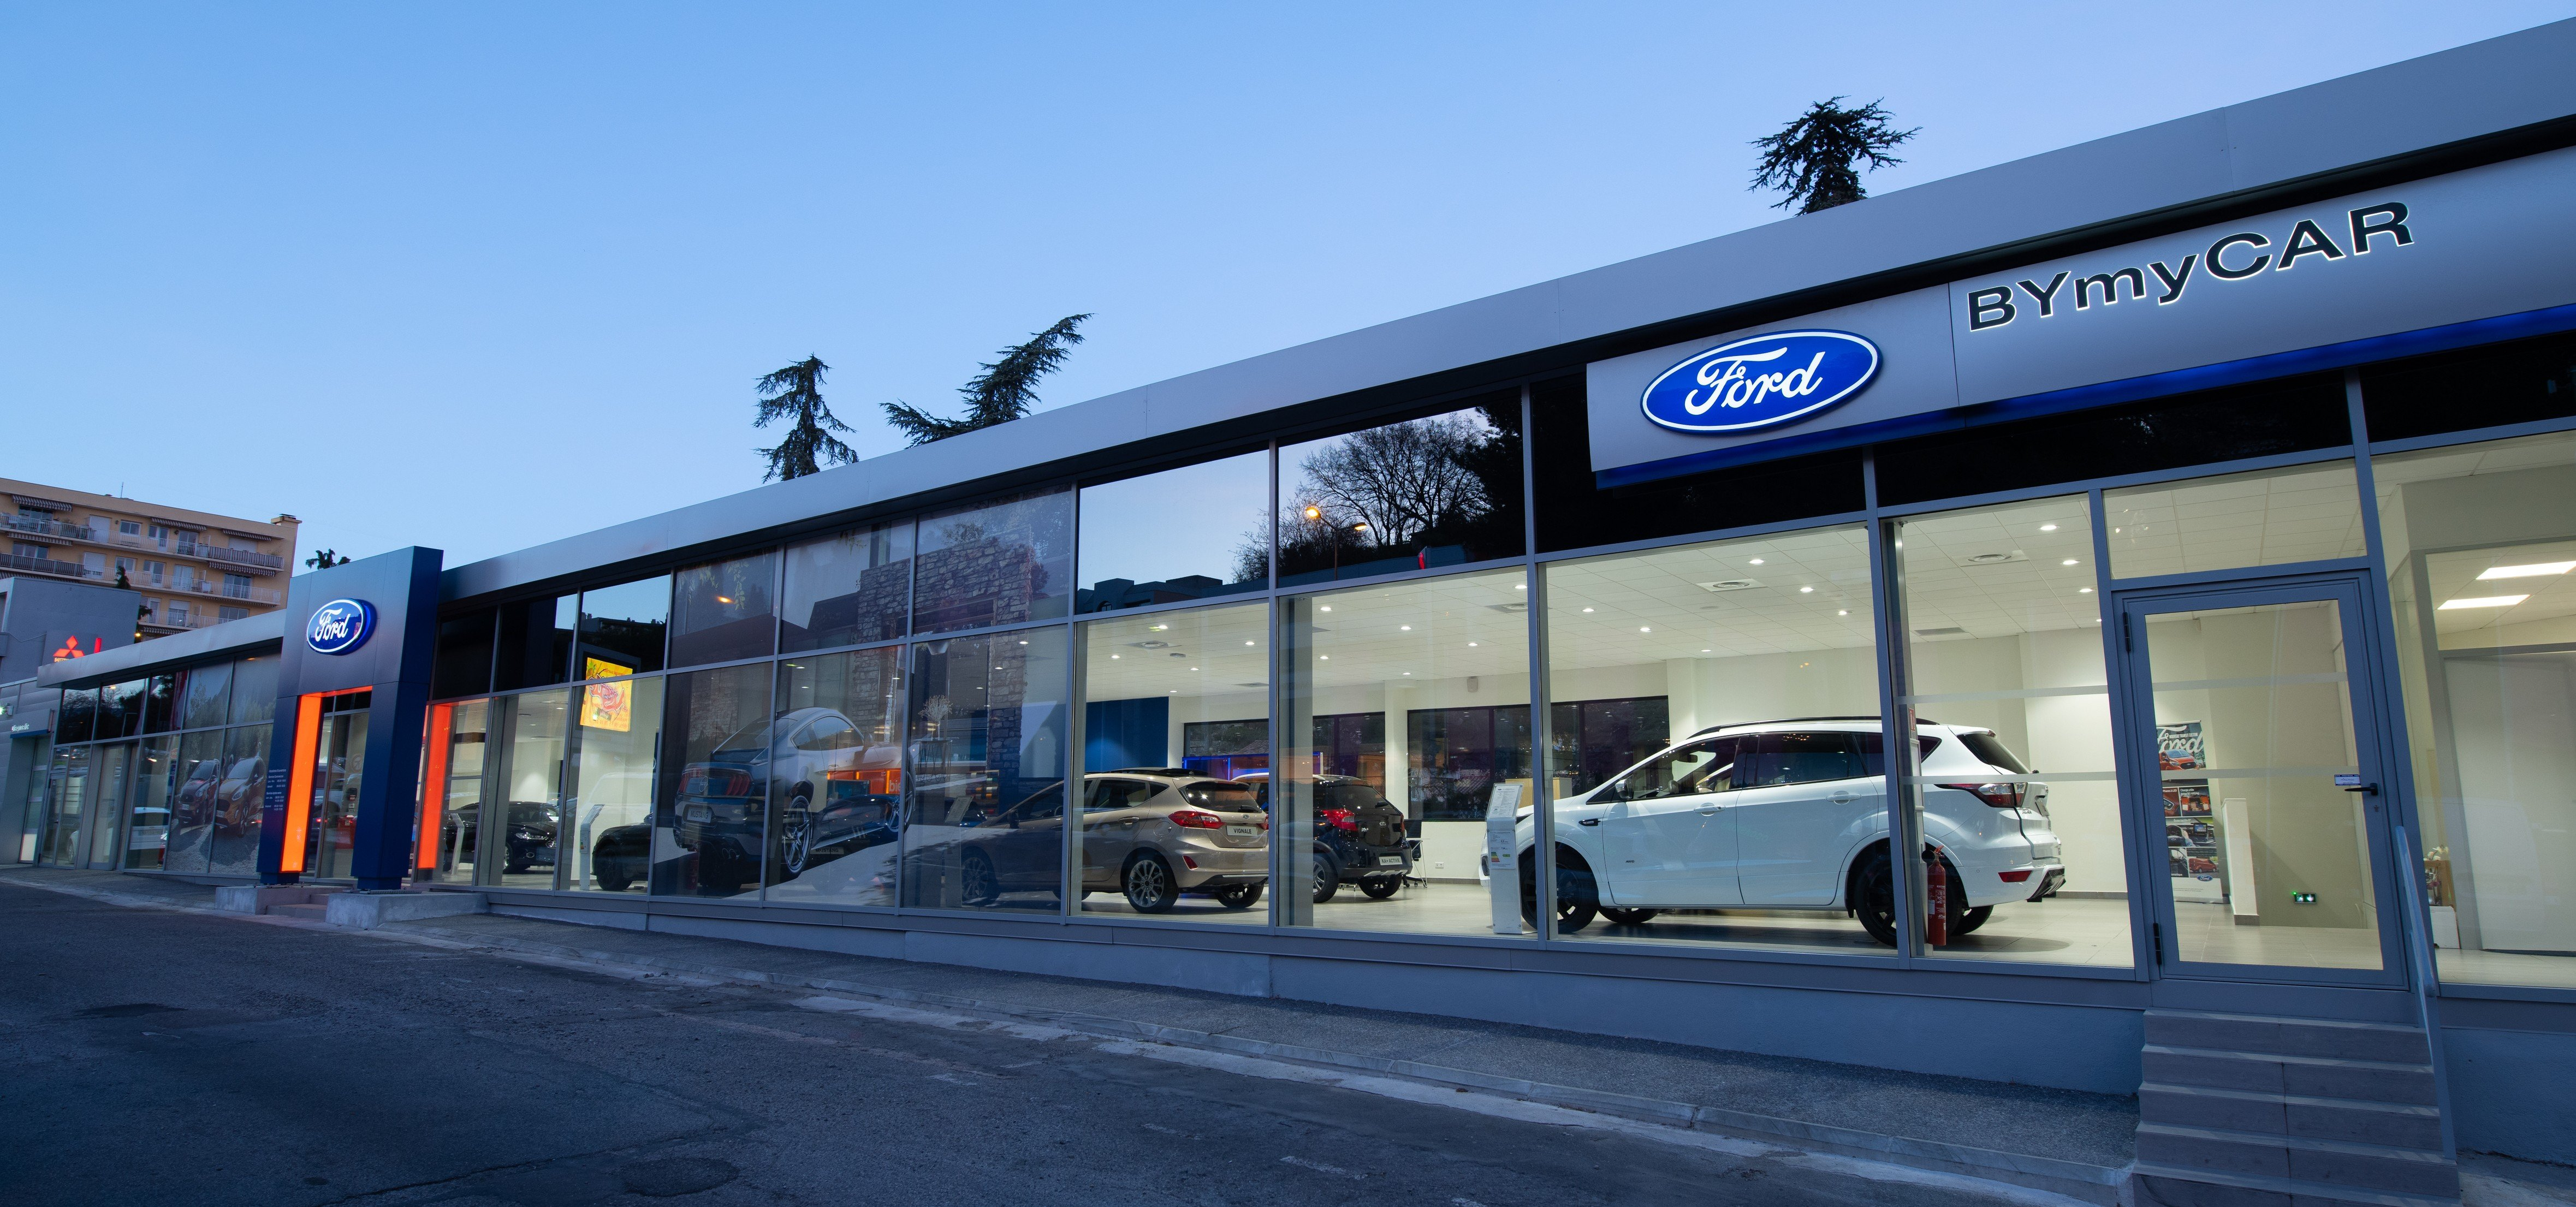 FORD BYmyCAR Cannes